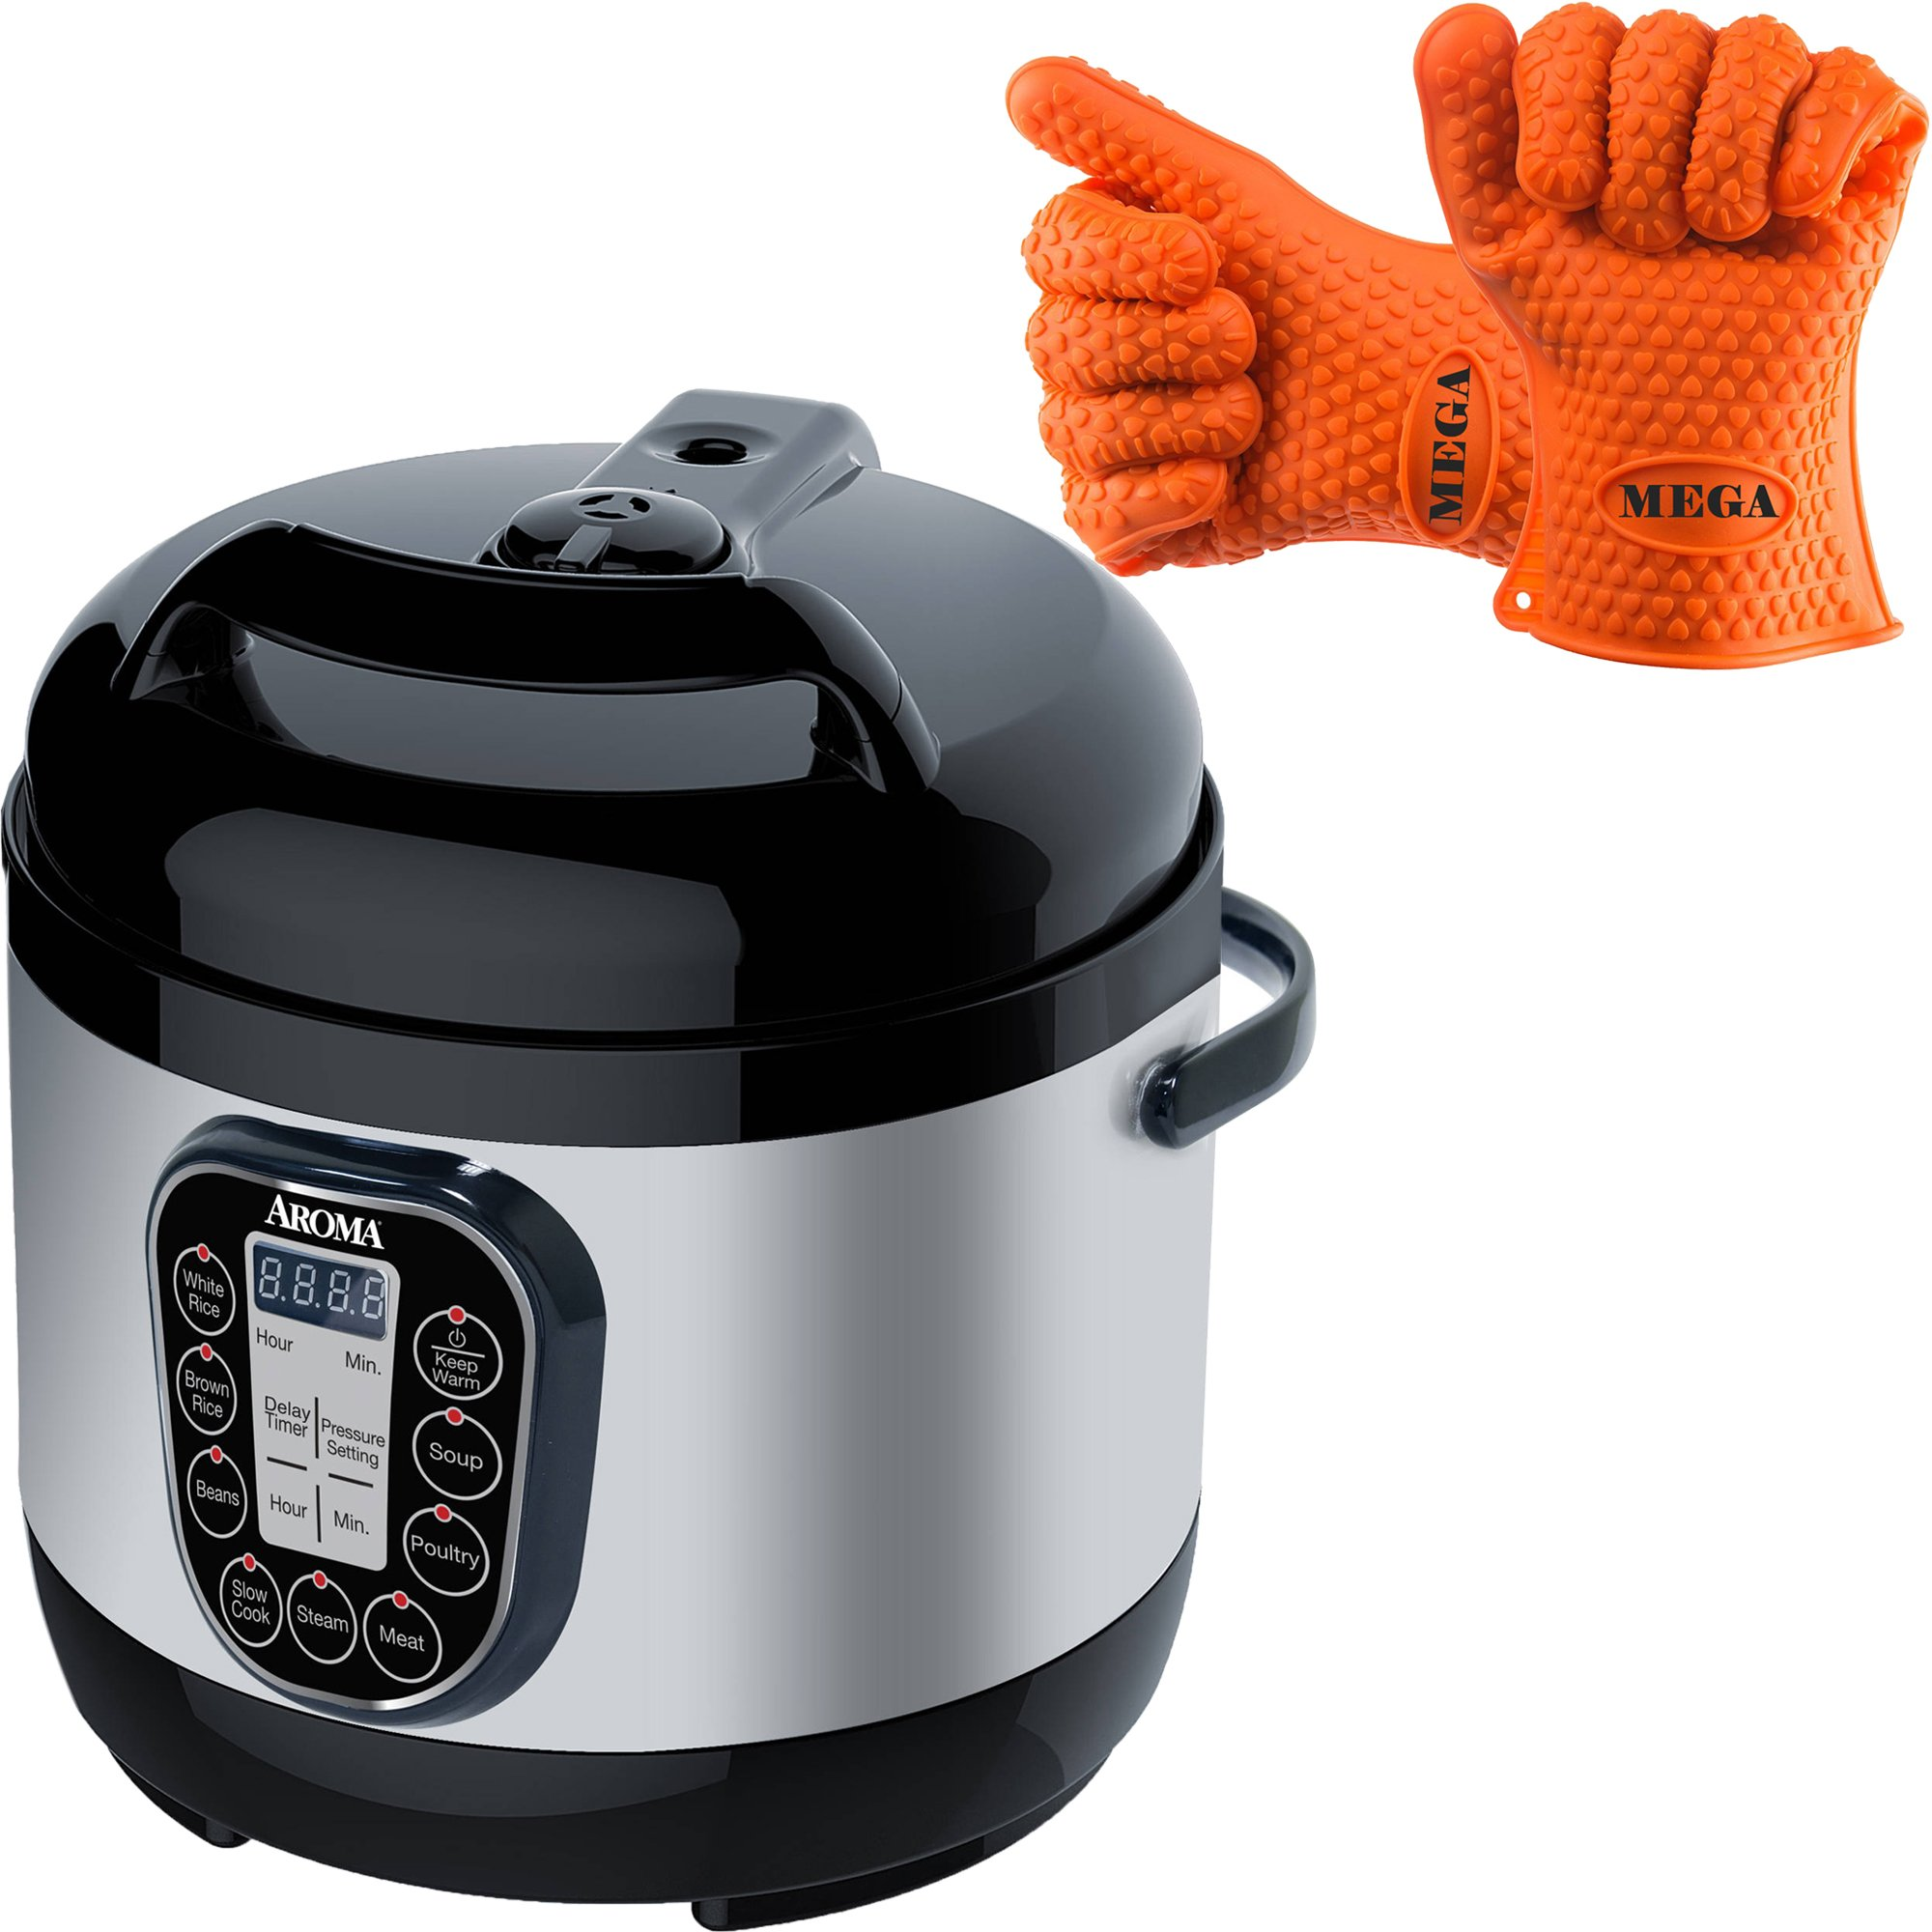 Aroma Housewares 8 Cup Programmable Digital Cool Touch Turbo Rice and Pressure Cooker, Silver with Heat Resistant Silicone Gloves by Aroma Housewares